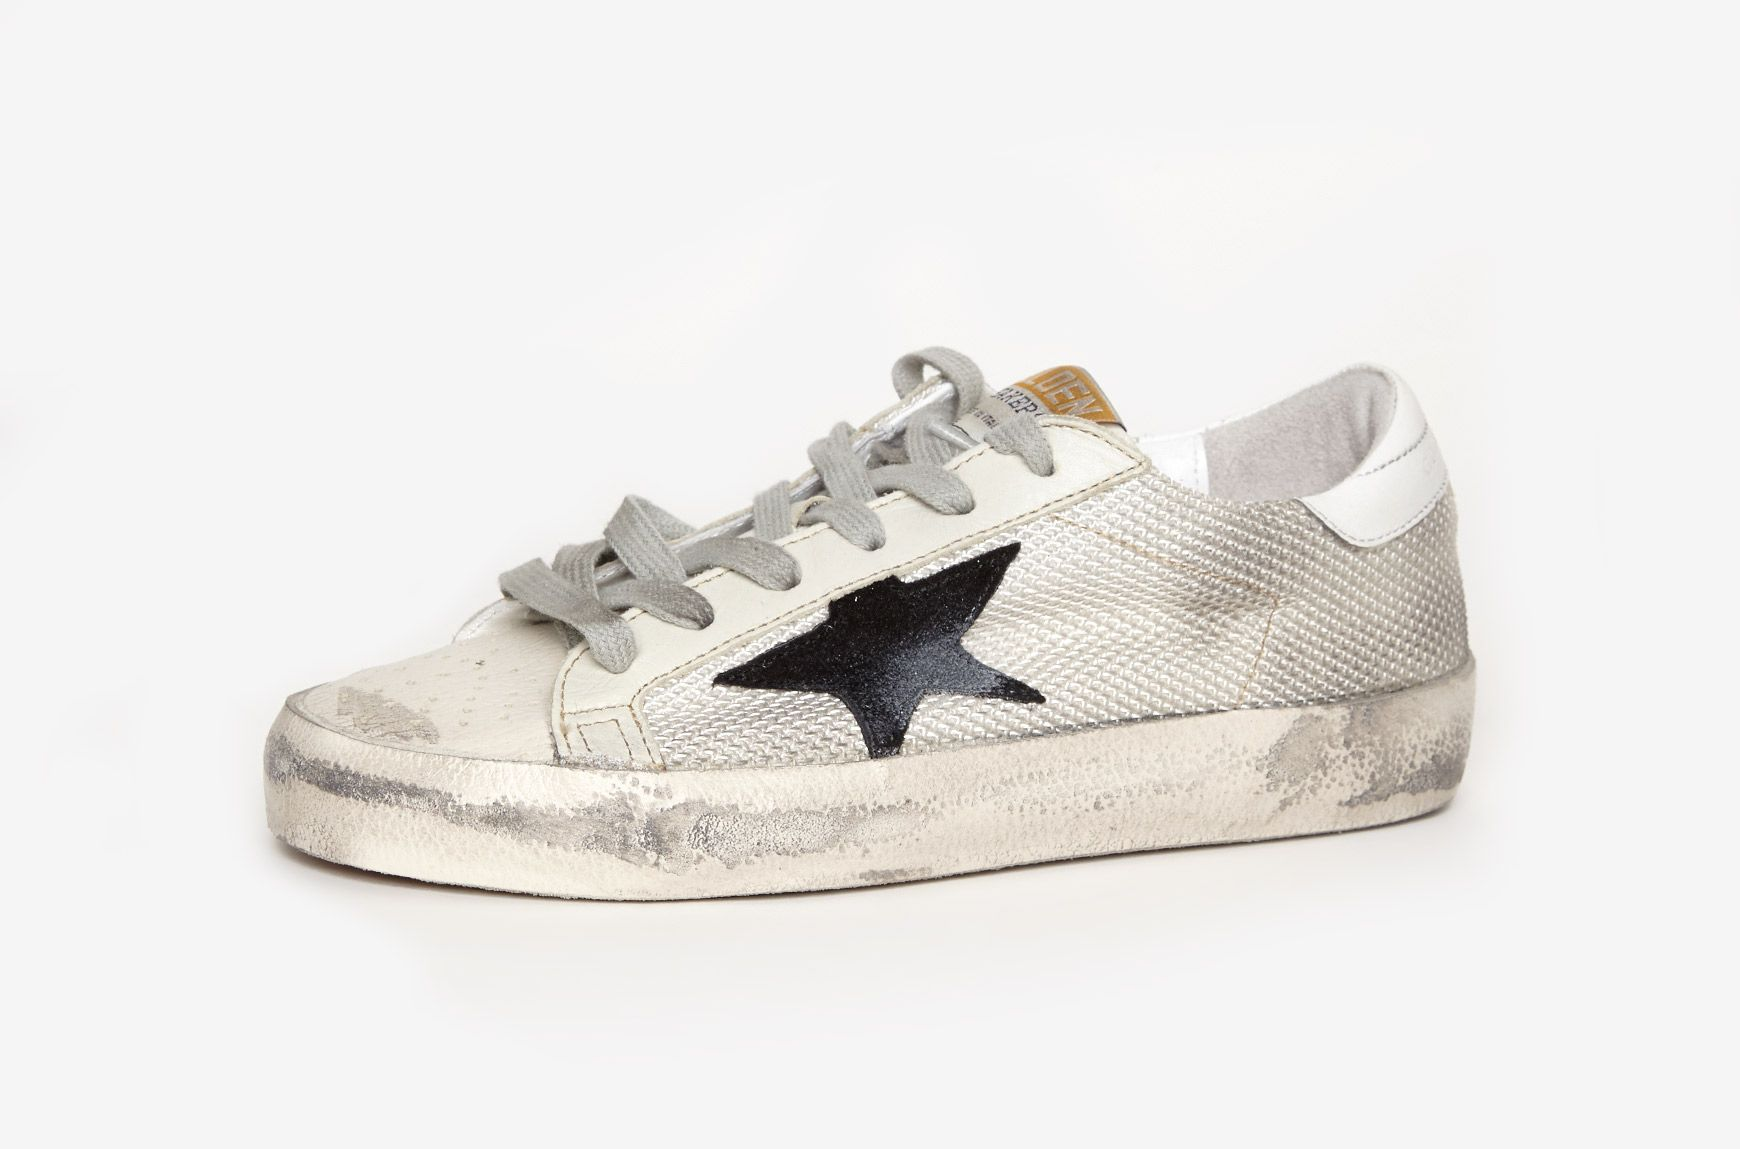 Oie D'or De Luxe Baskets Superstar Gris De Marque nA5jE6VH